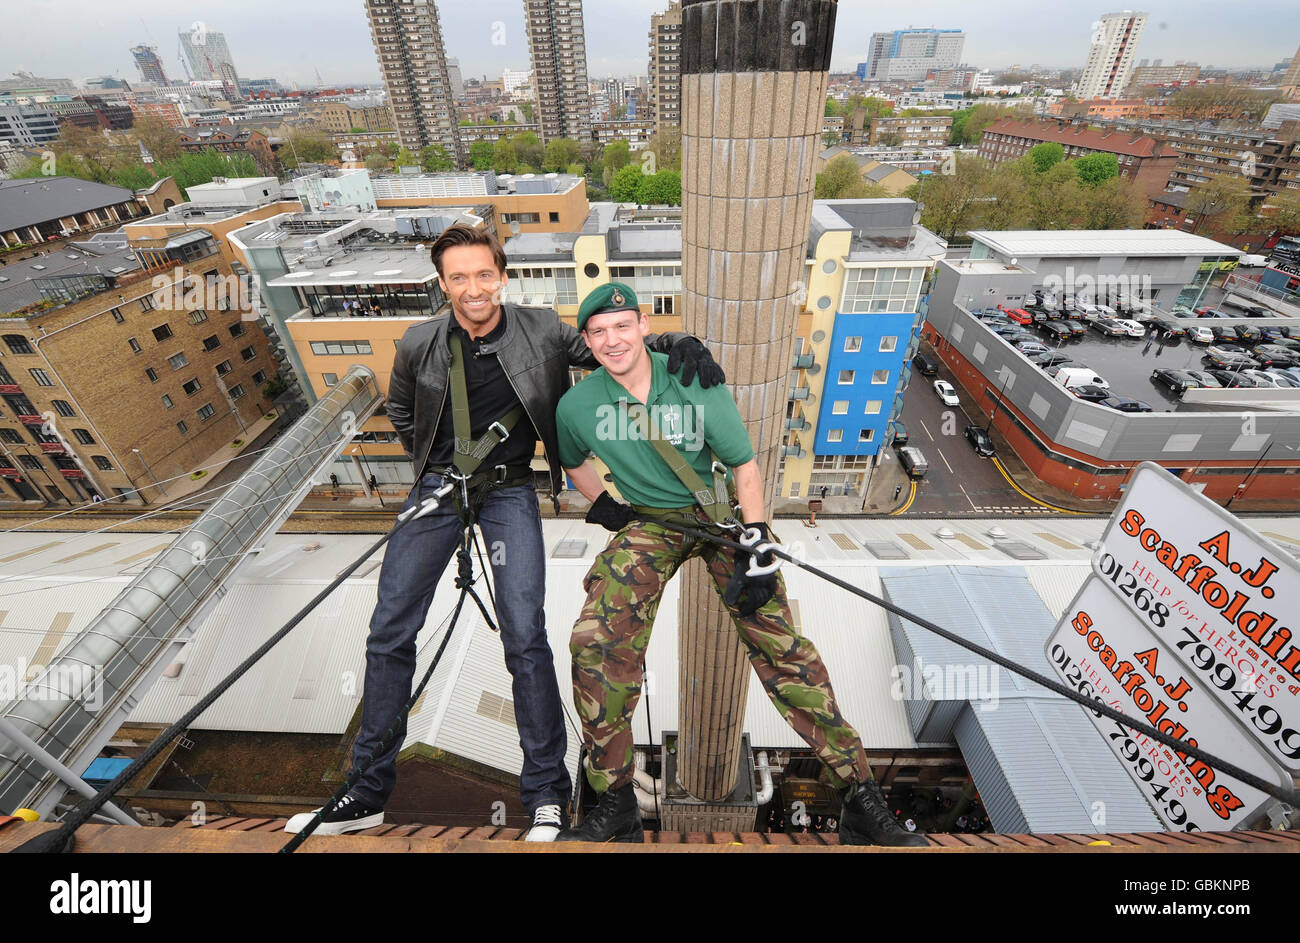 Hugh Jackman abseils for Help The Heroes - Stock Image